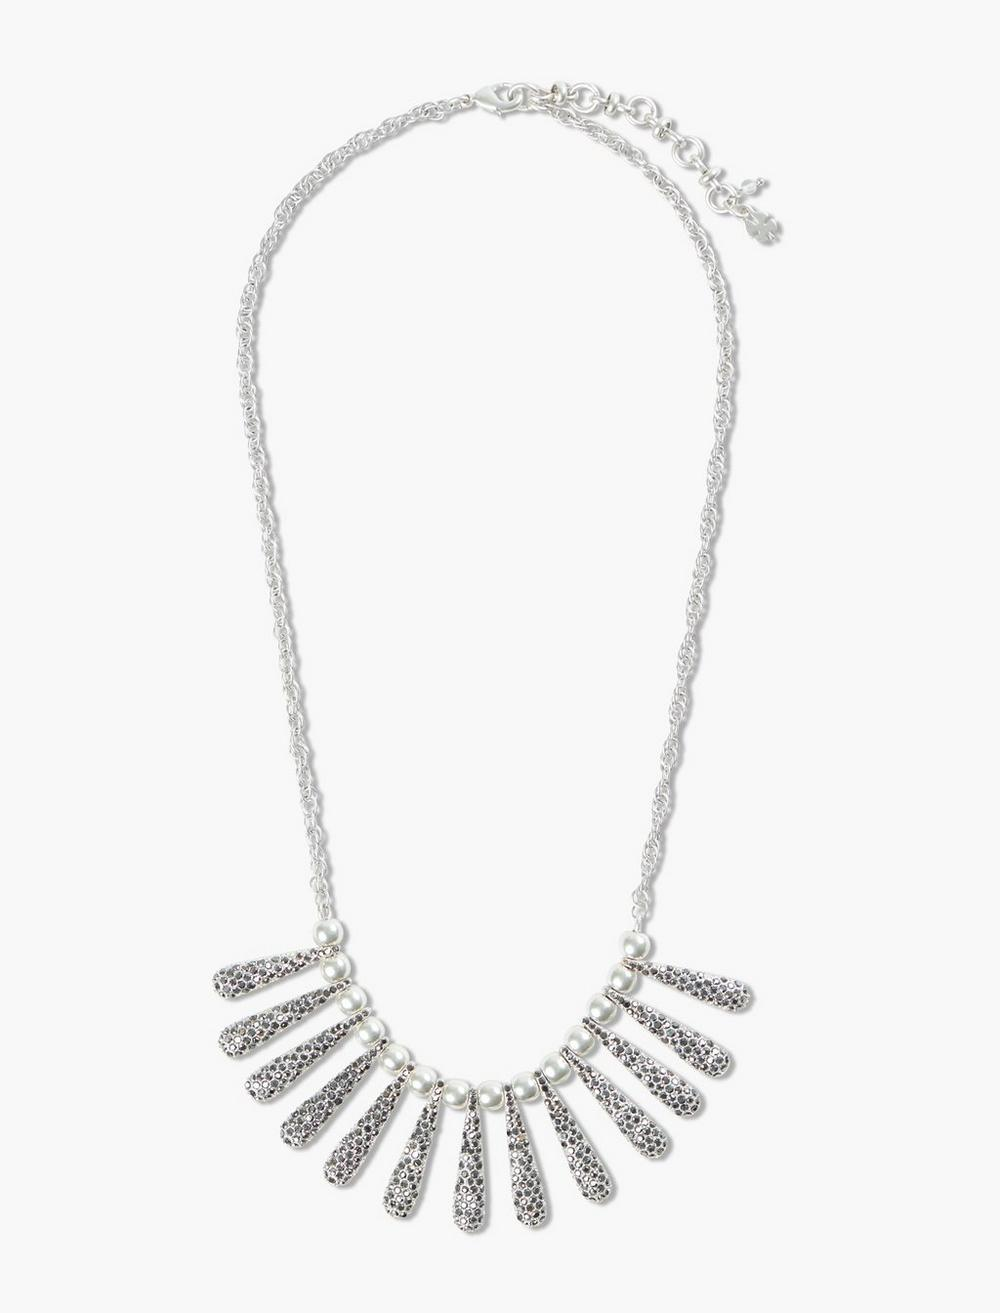 PAVE SPIKE COLLAR NECKLACE, image 1